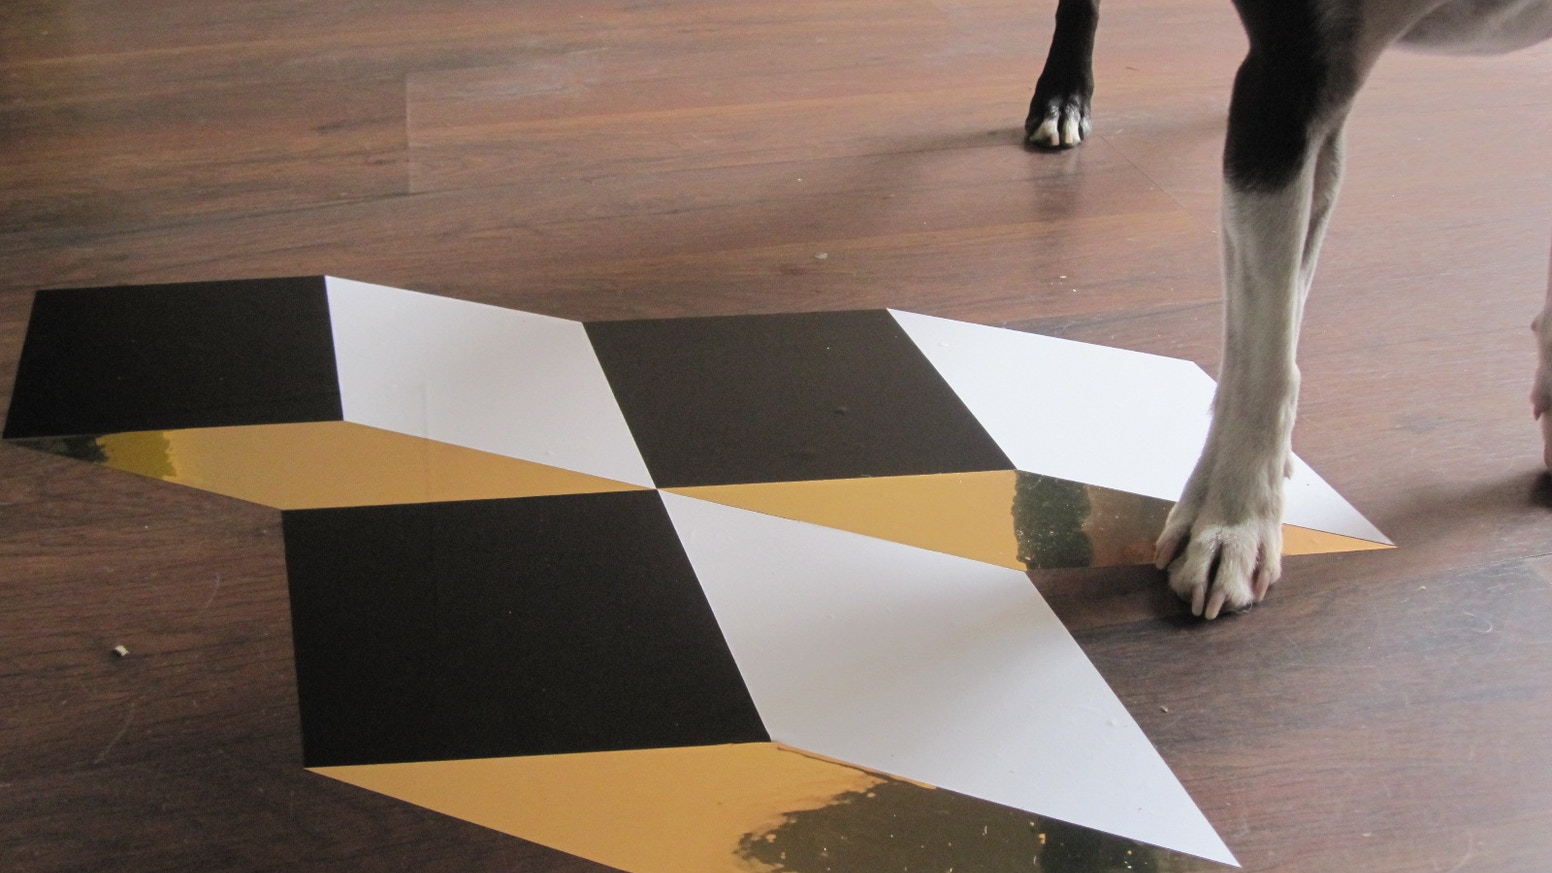 Facet removable vinyl floor tiles by sara czosnyka kickstarter facet removable vinyl floor tiles dailygadgetfo Image collections